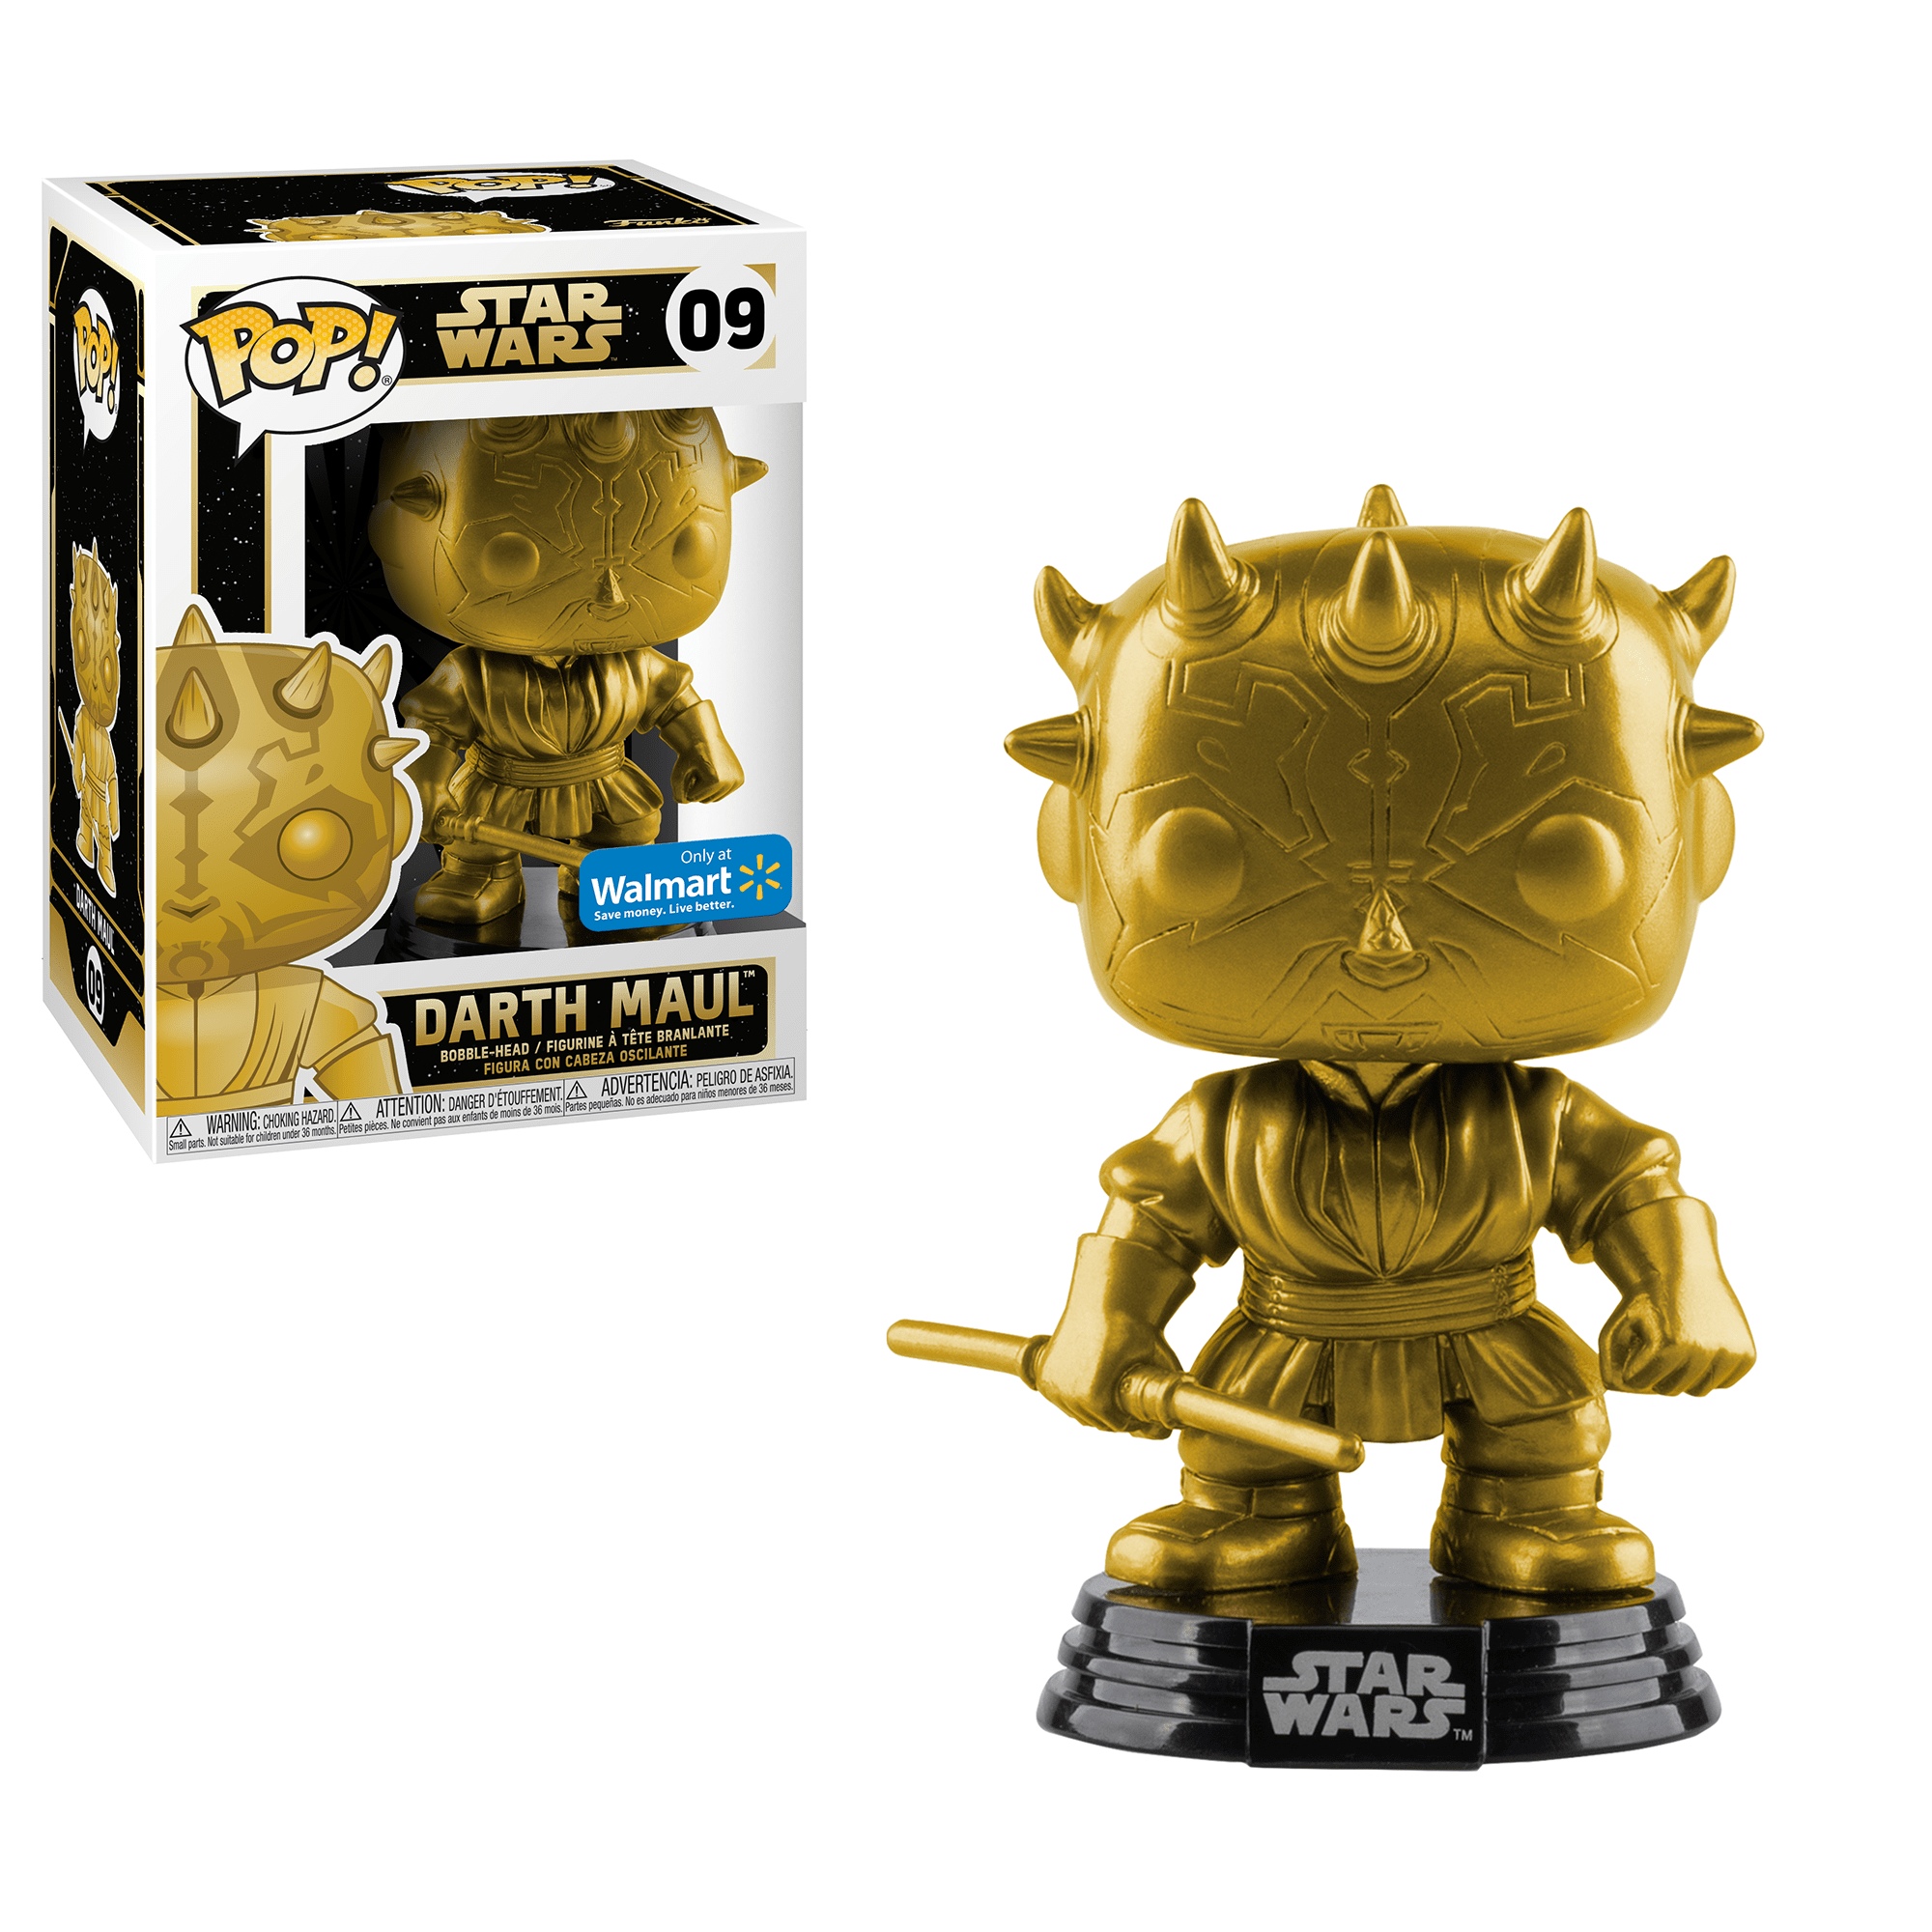 Funko Pop! Movies - Star Wars #09 - Darth Maul (Gold Metallic) (Exclusive) - Simply Toys